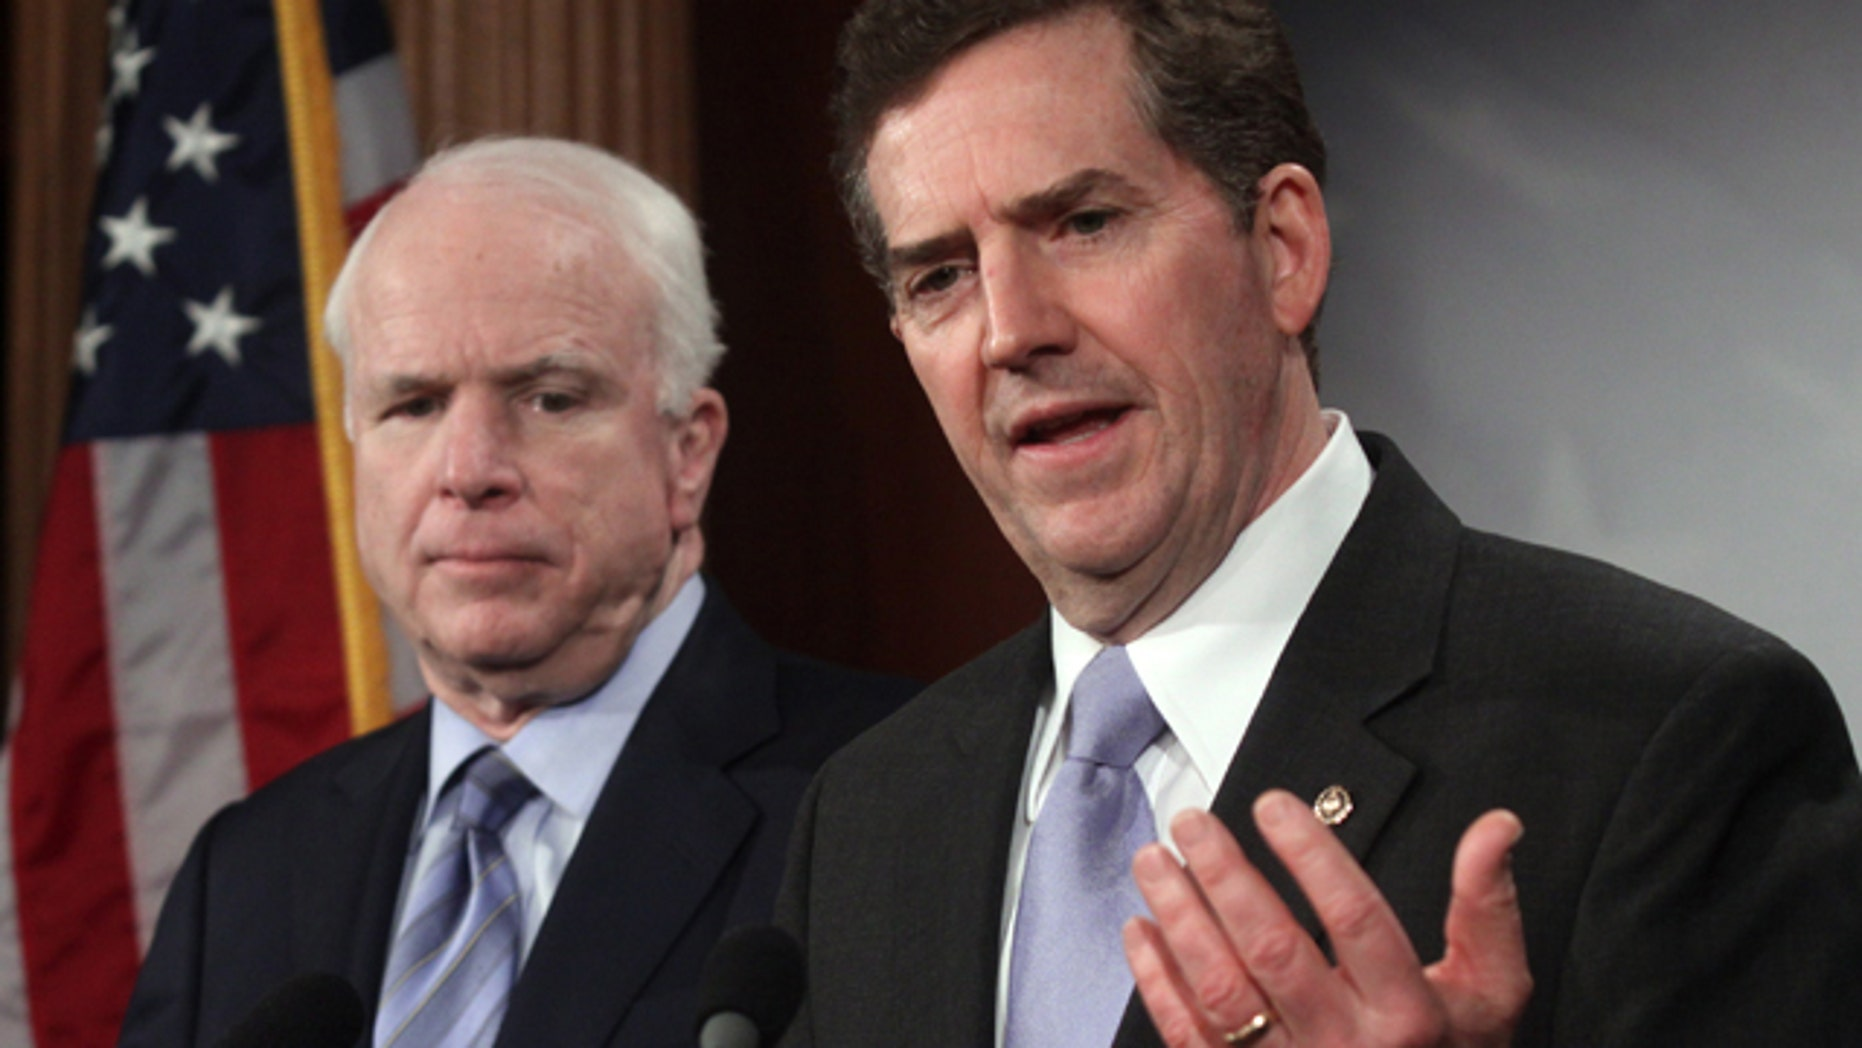 Feb. 4, 2010: Sen. Jim DeMint, R-S.C., right, attends a news conference with John McCain on Capitol Hill in Washington.